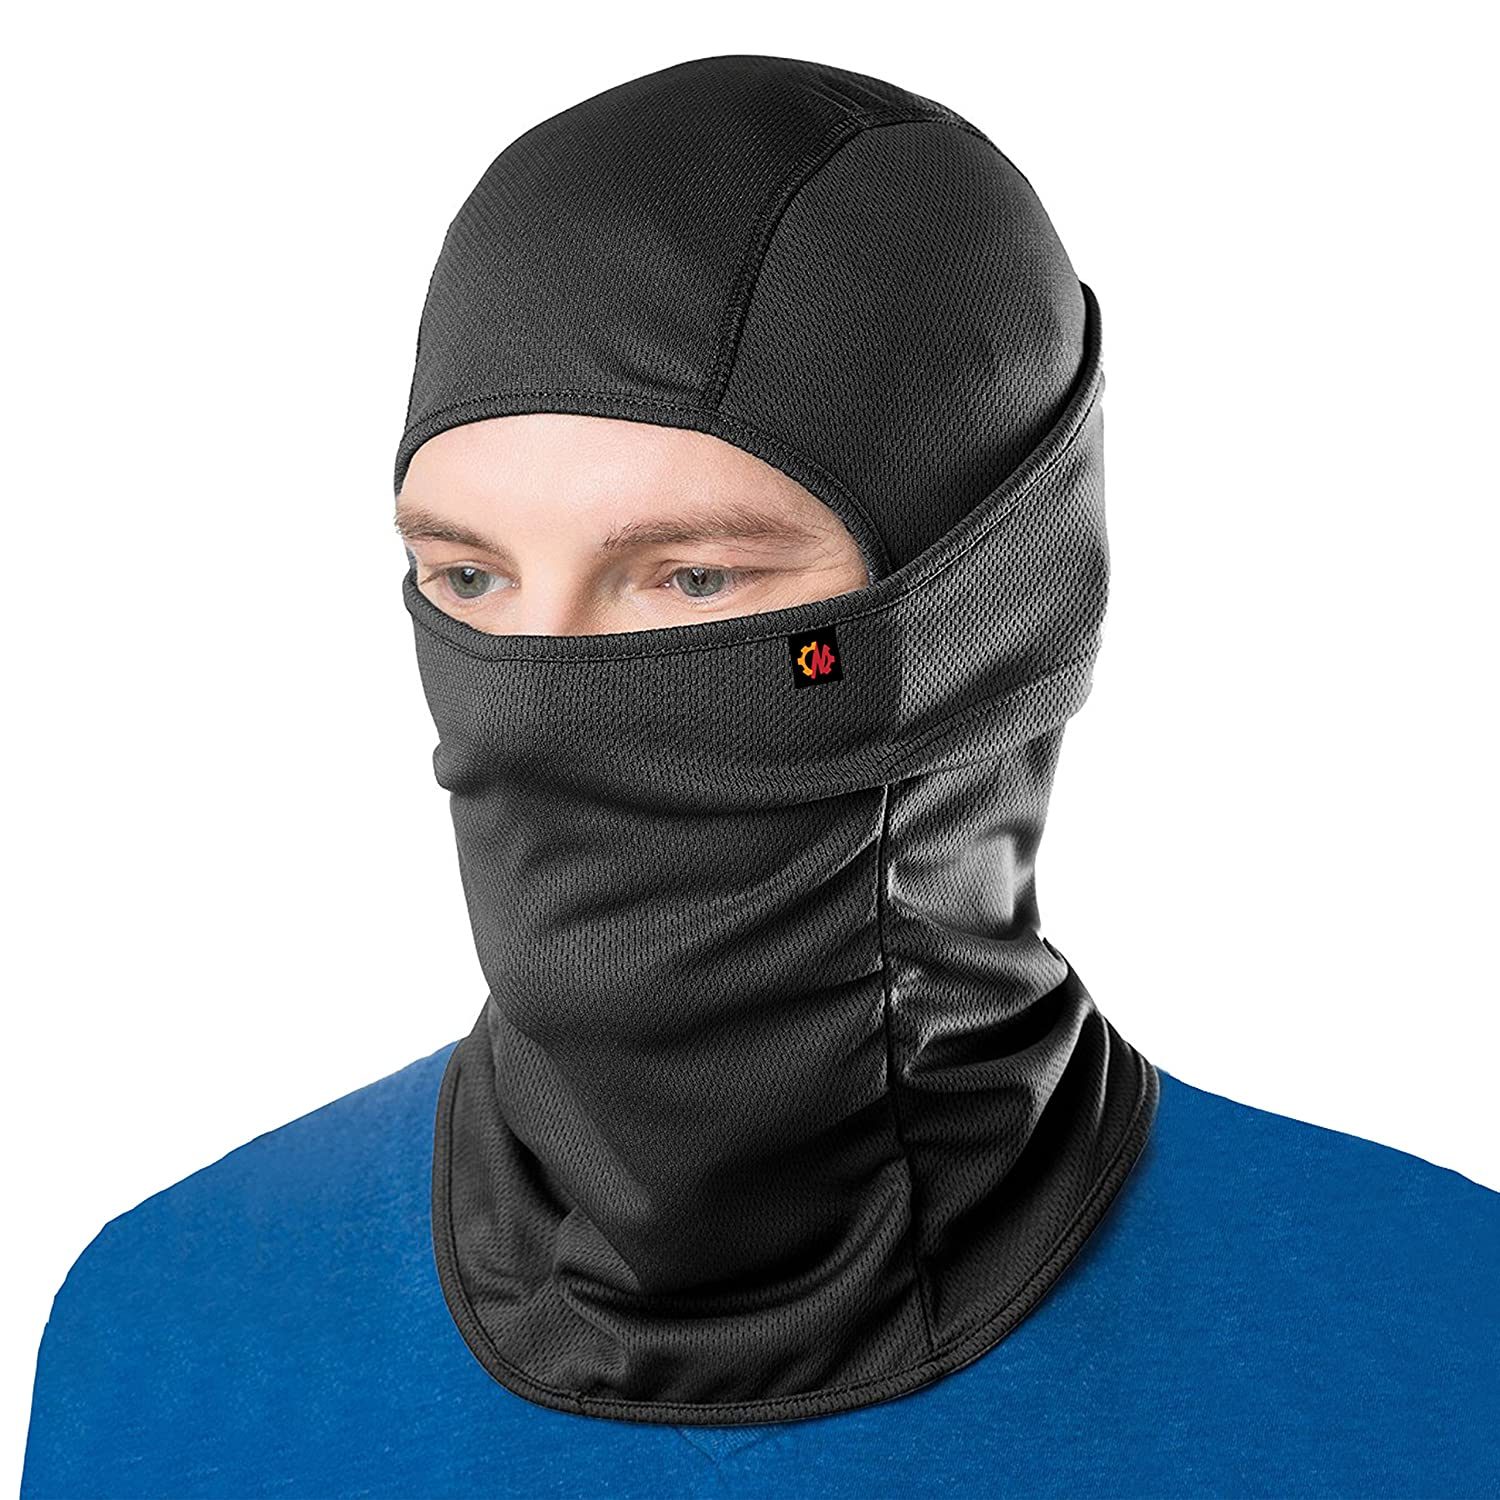 Head   Face Covers  Buy Head   Face Covers Online at Best Prices in ... a199fd7ce21